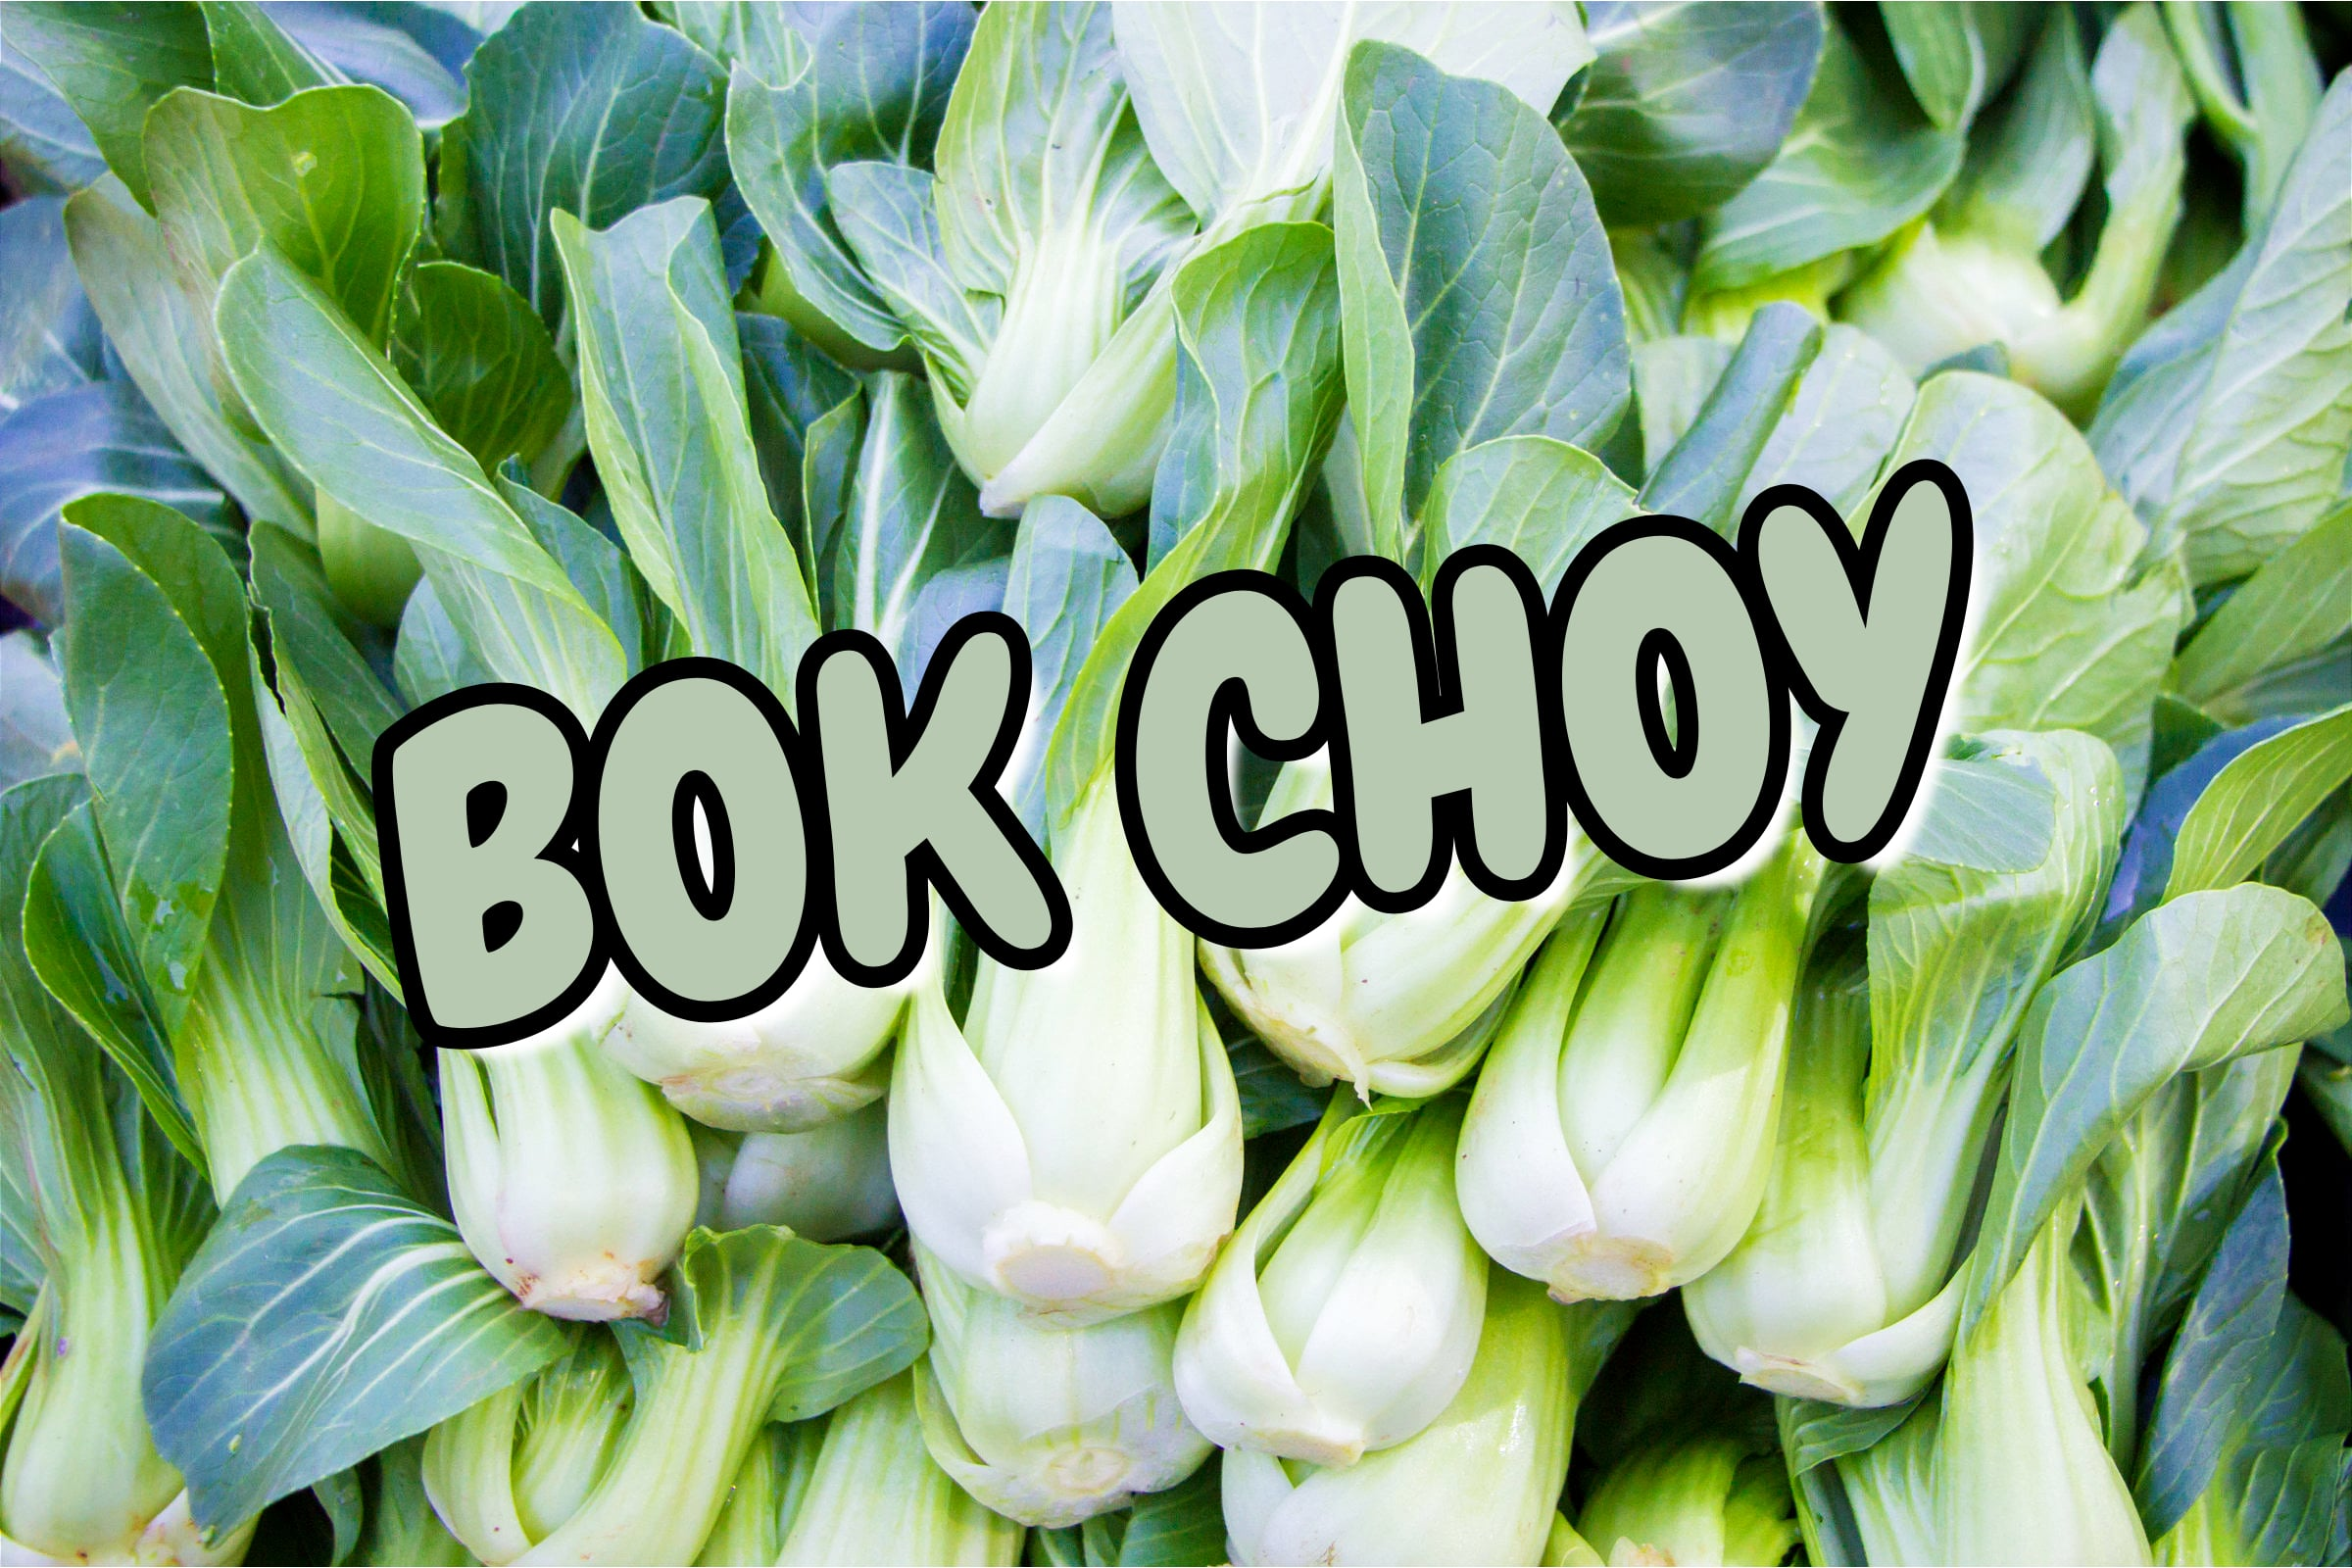 What Is The Bok Choy Plant?